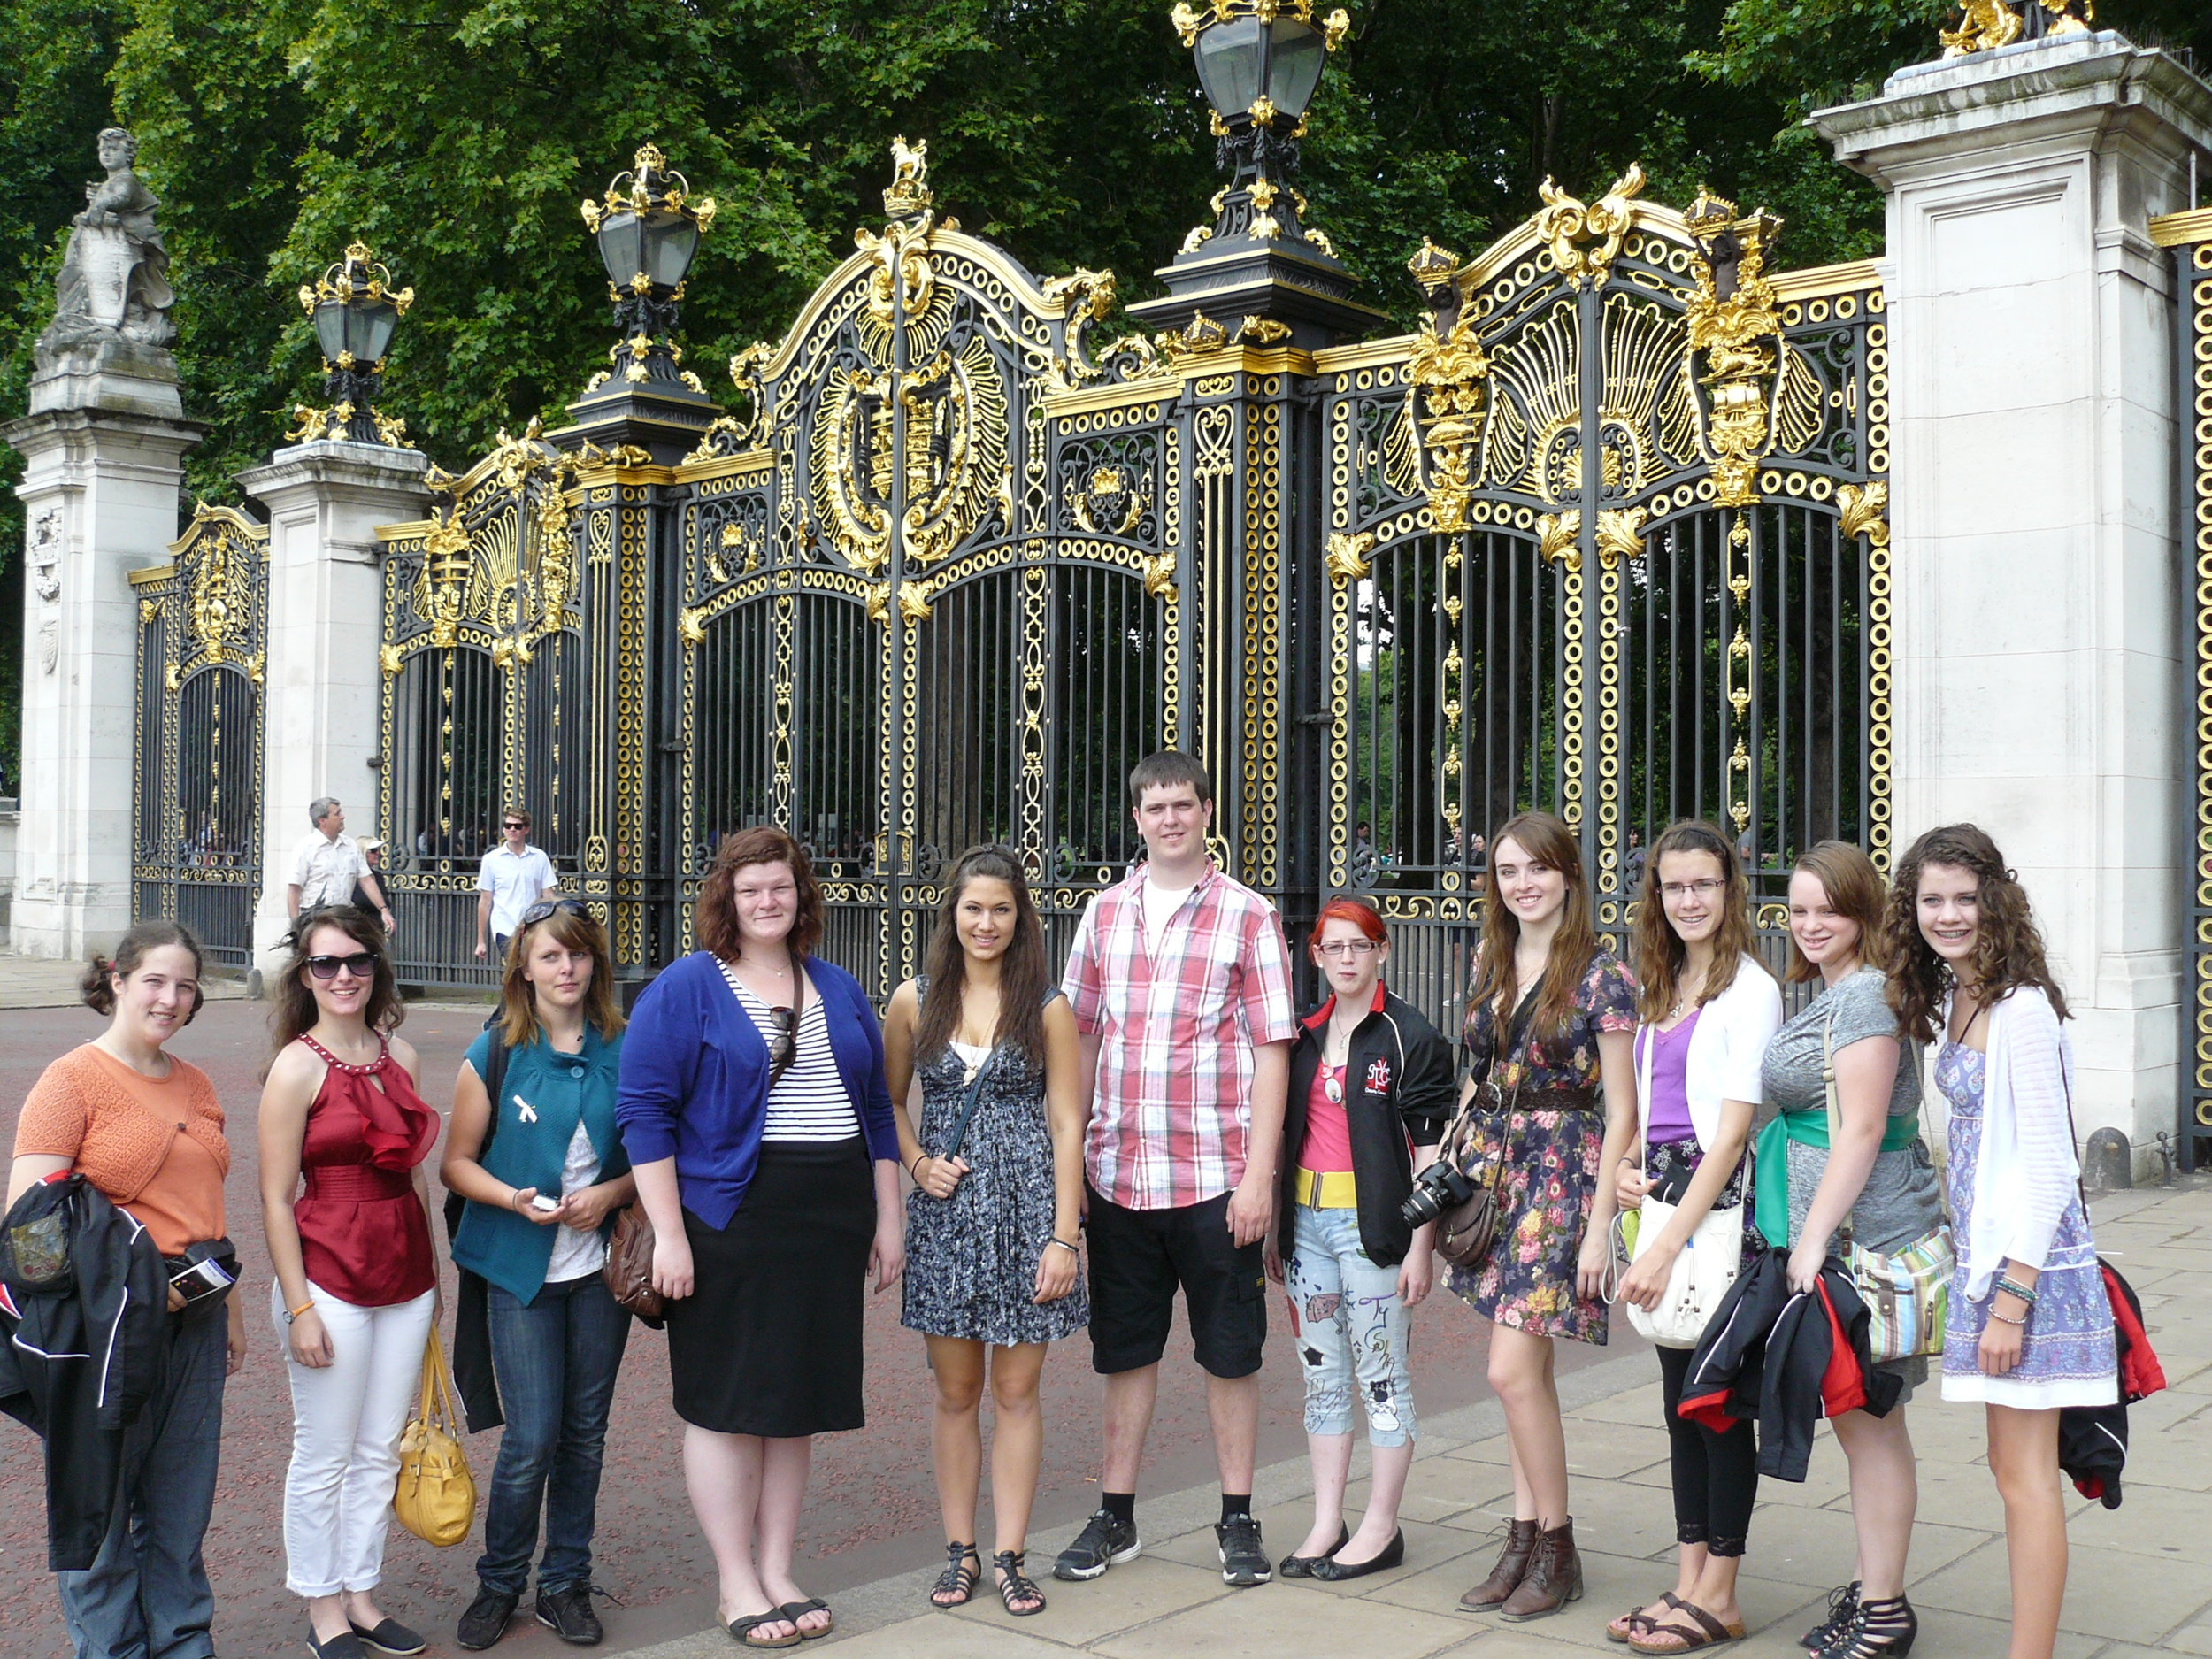 The choir in front of the Canada Gates by Buckingham Palace.